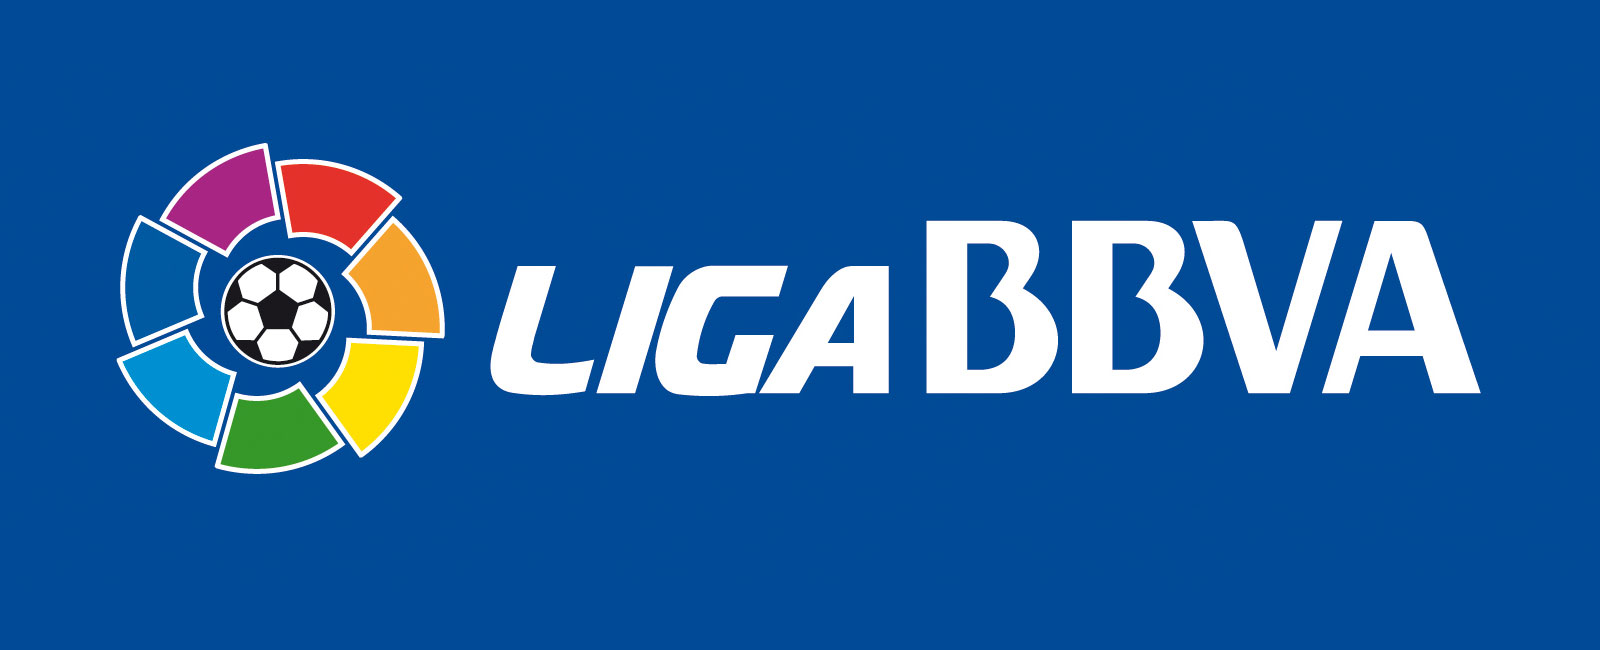 BBVA Ends La Liga Name Sponsorship - Footy Headlines